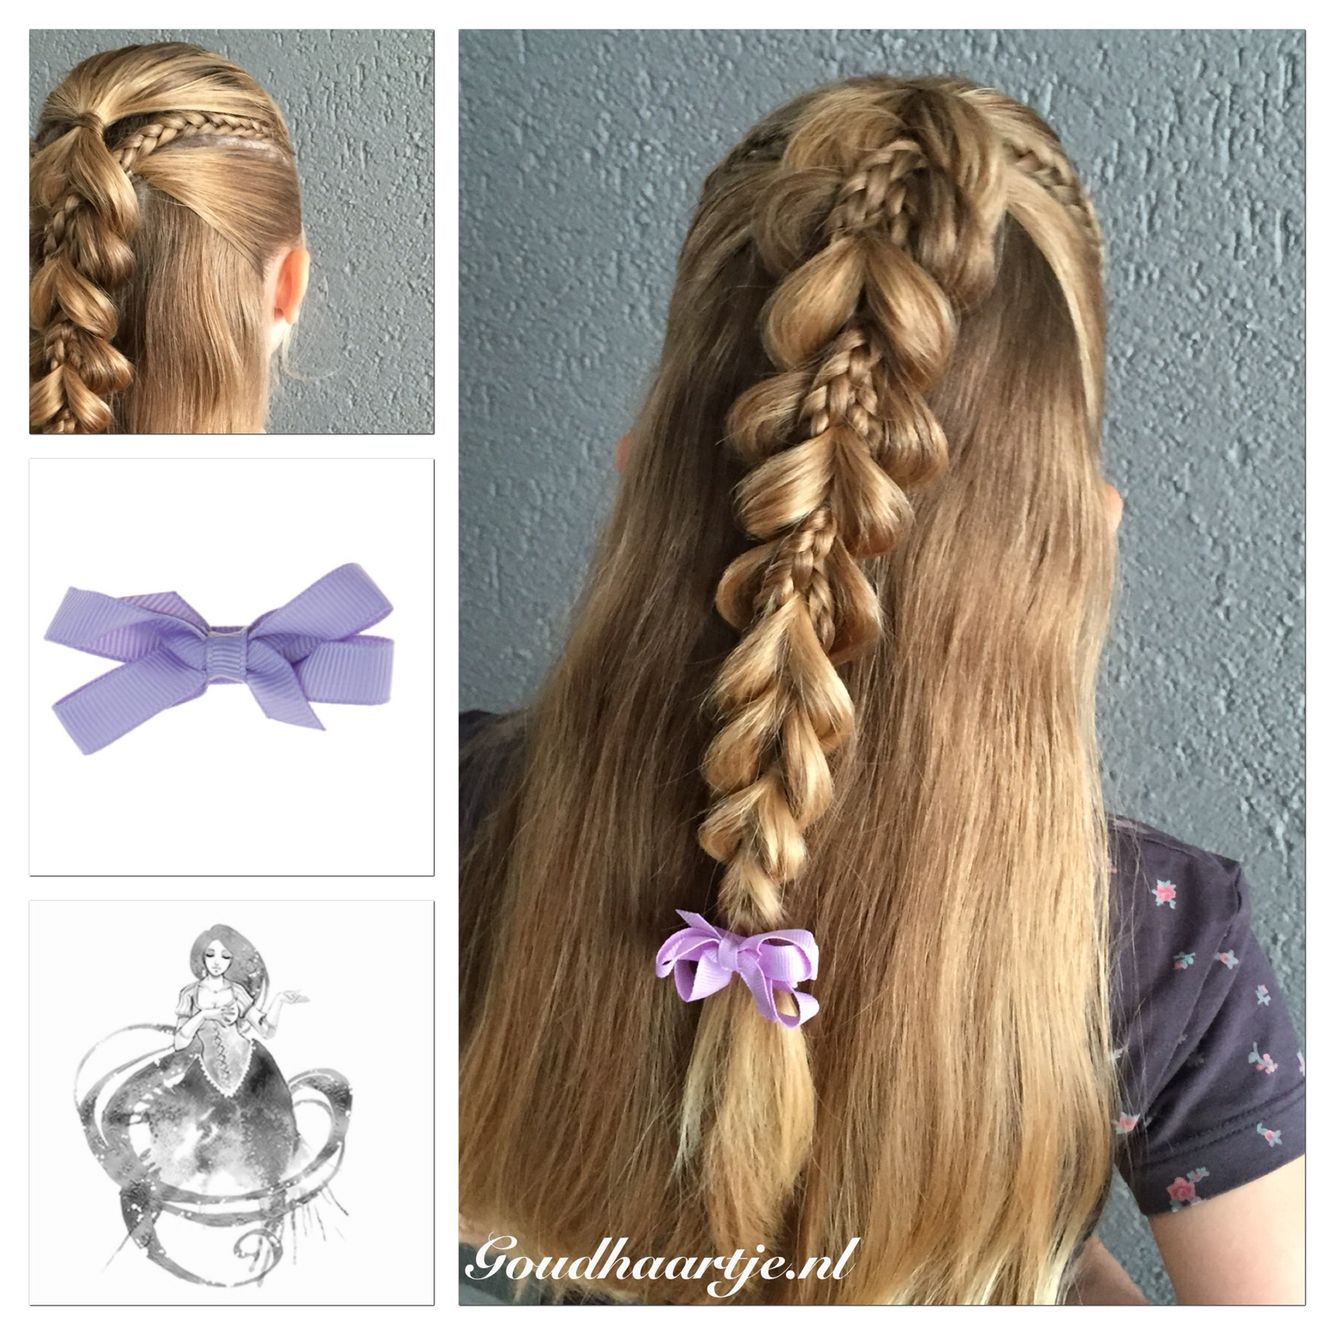 Pull through braid with microbraids and a cute bow from goudhaartje